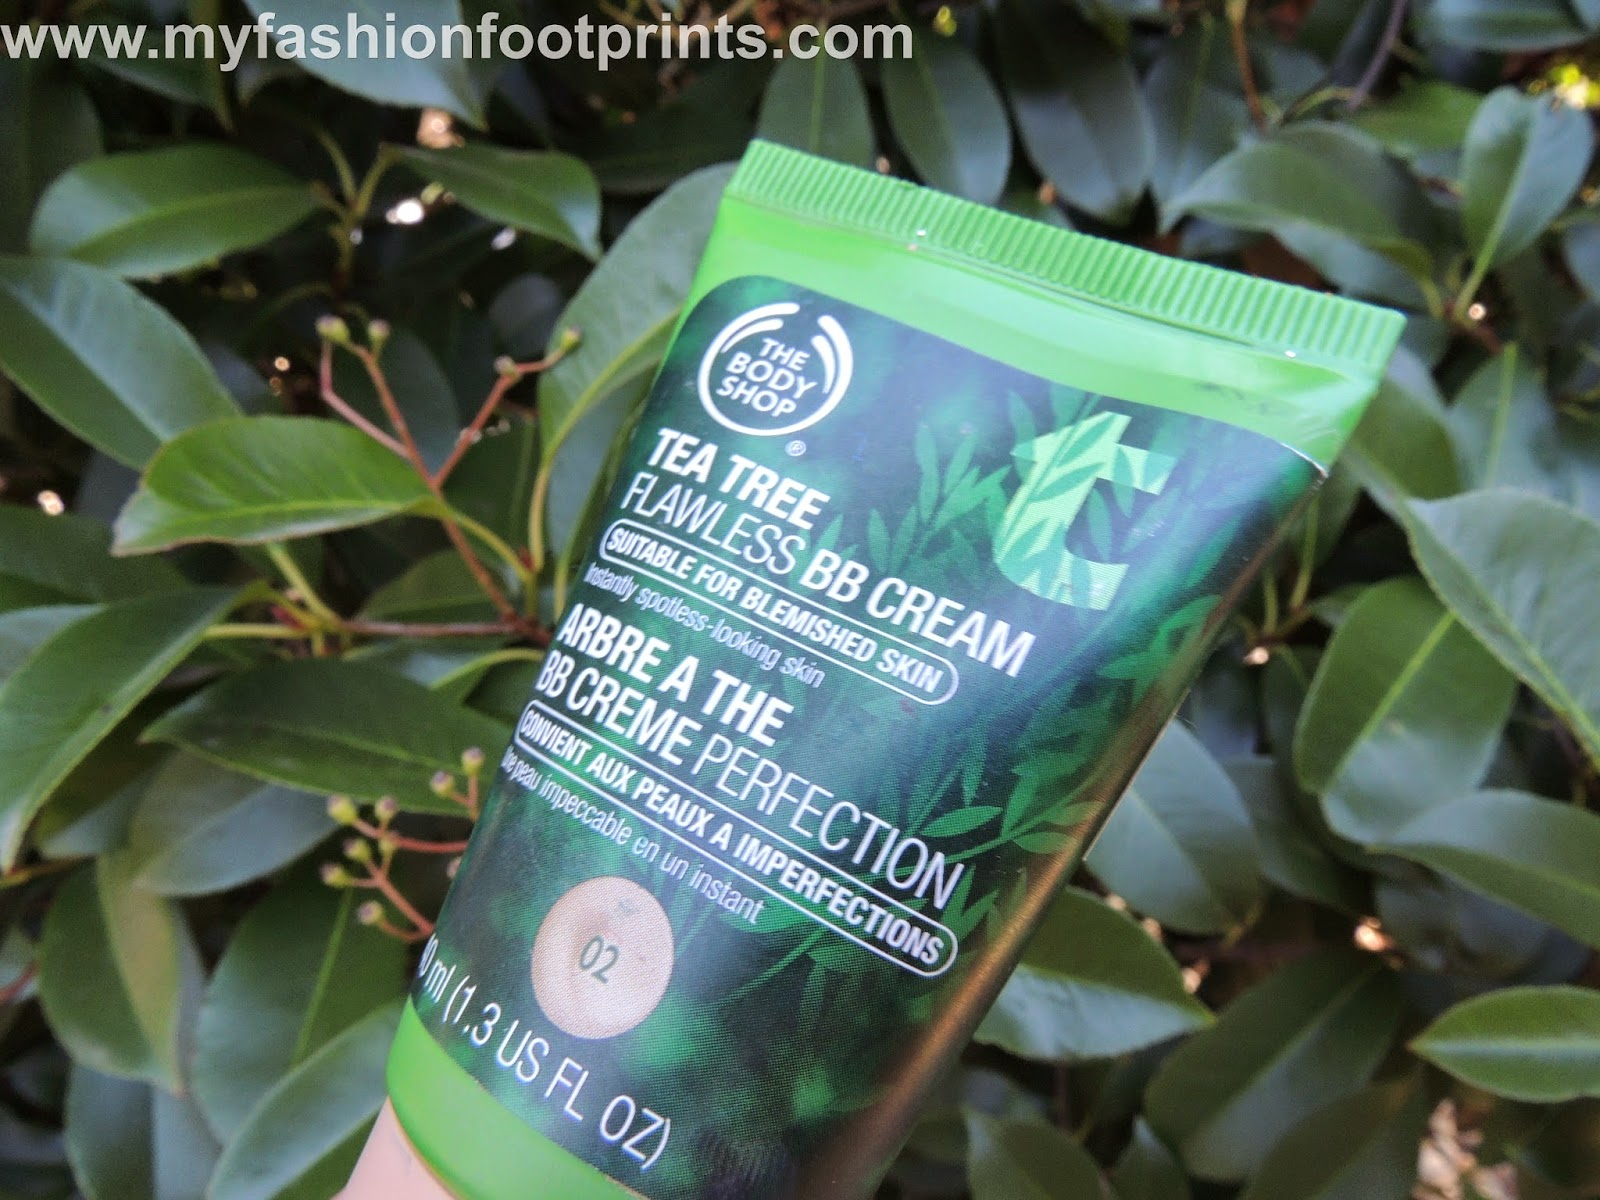 The Body Shop Tea Tree Flawless BB Cream